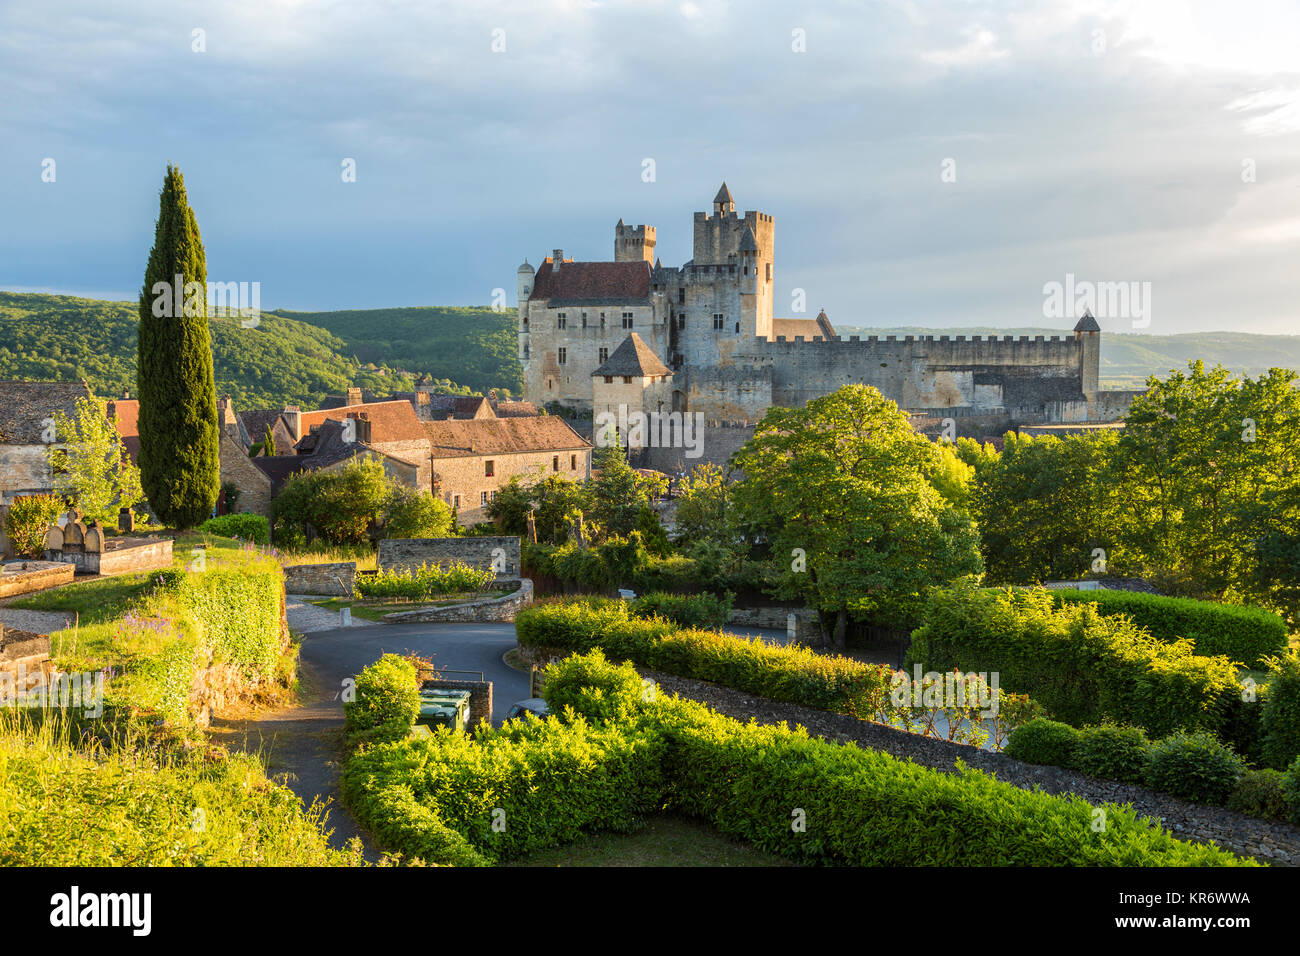 Landscape with trees, hedges and medieval castle with graveyard in the mid distance. - Stock Image